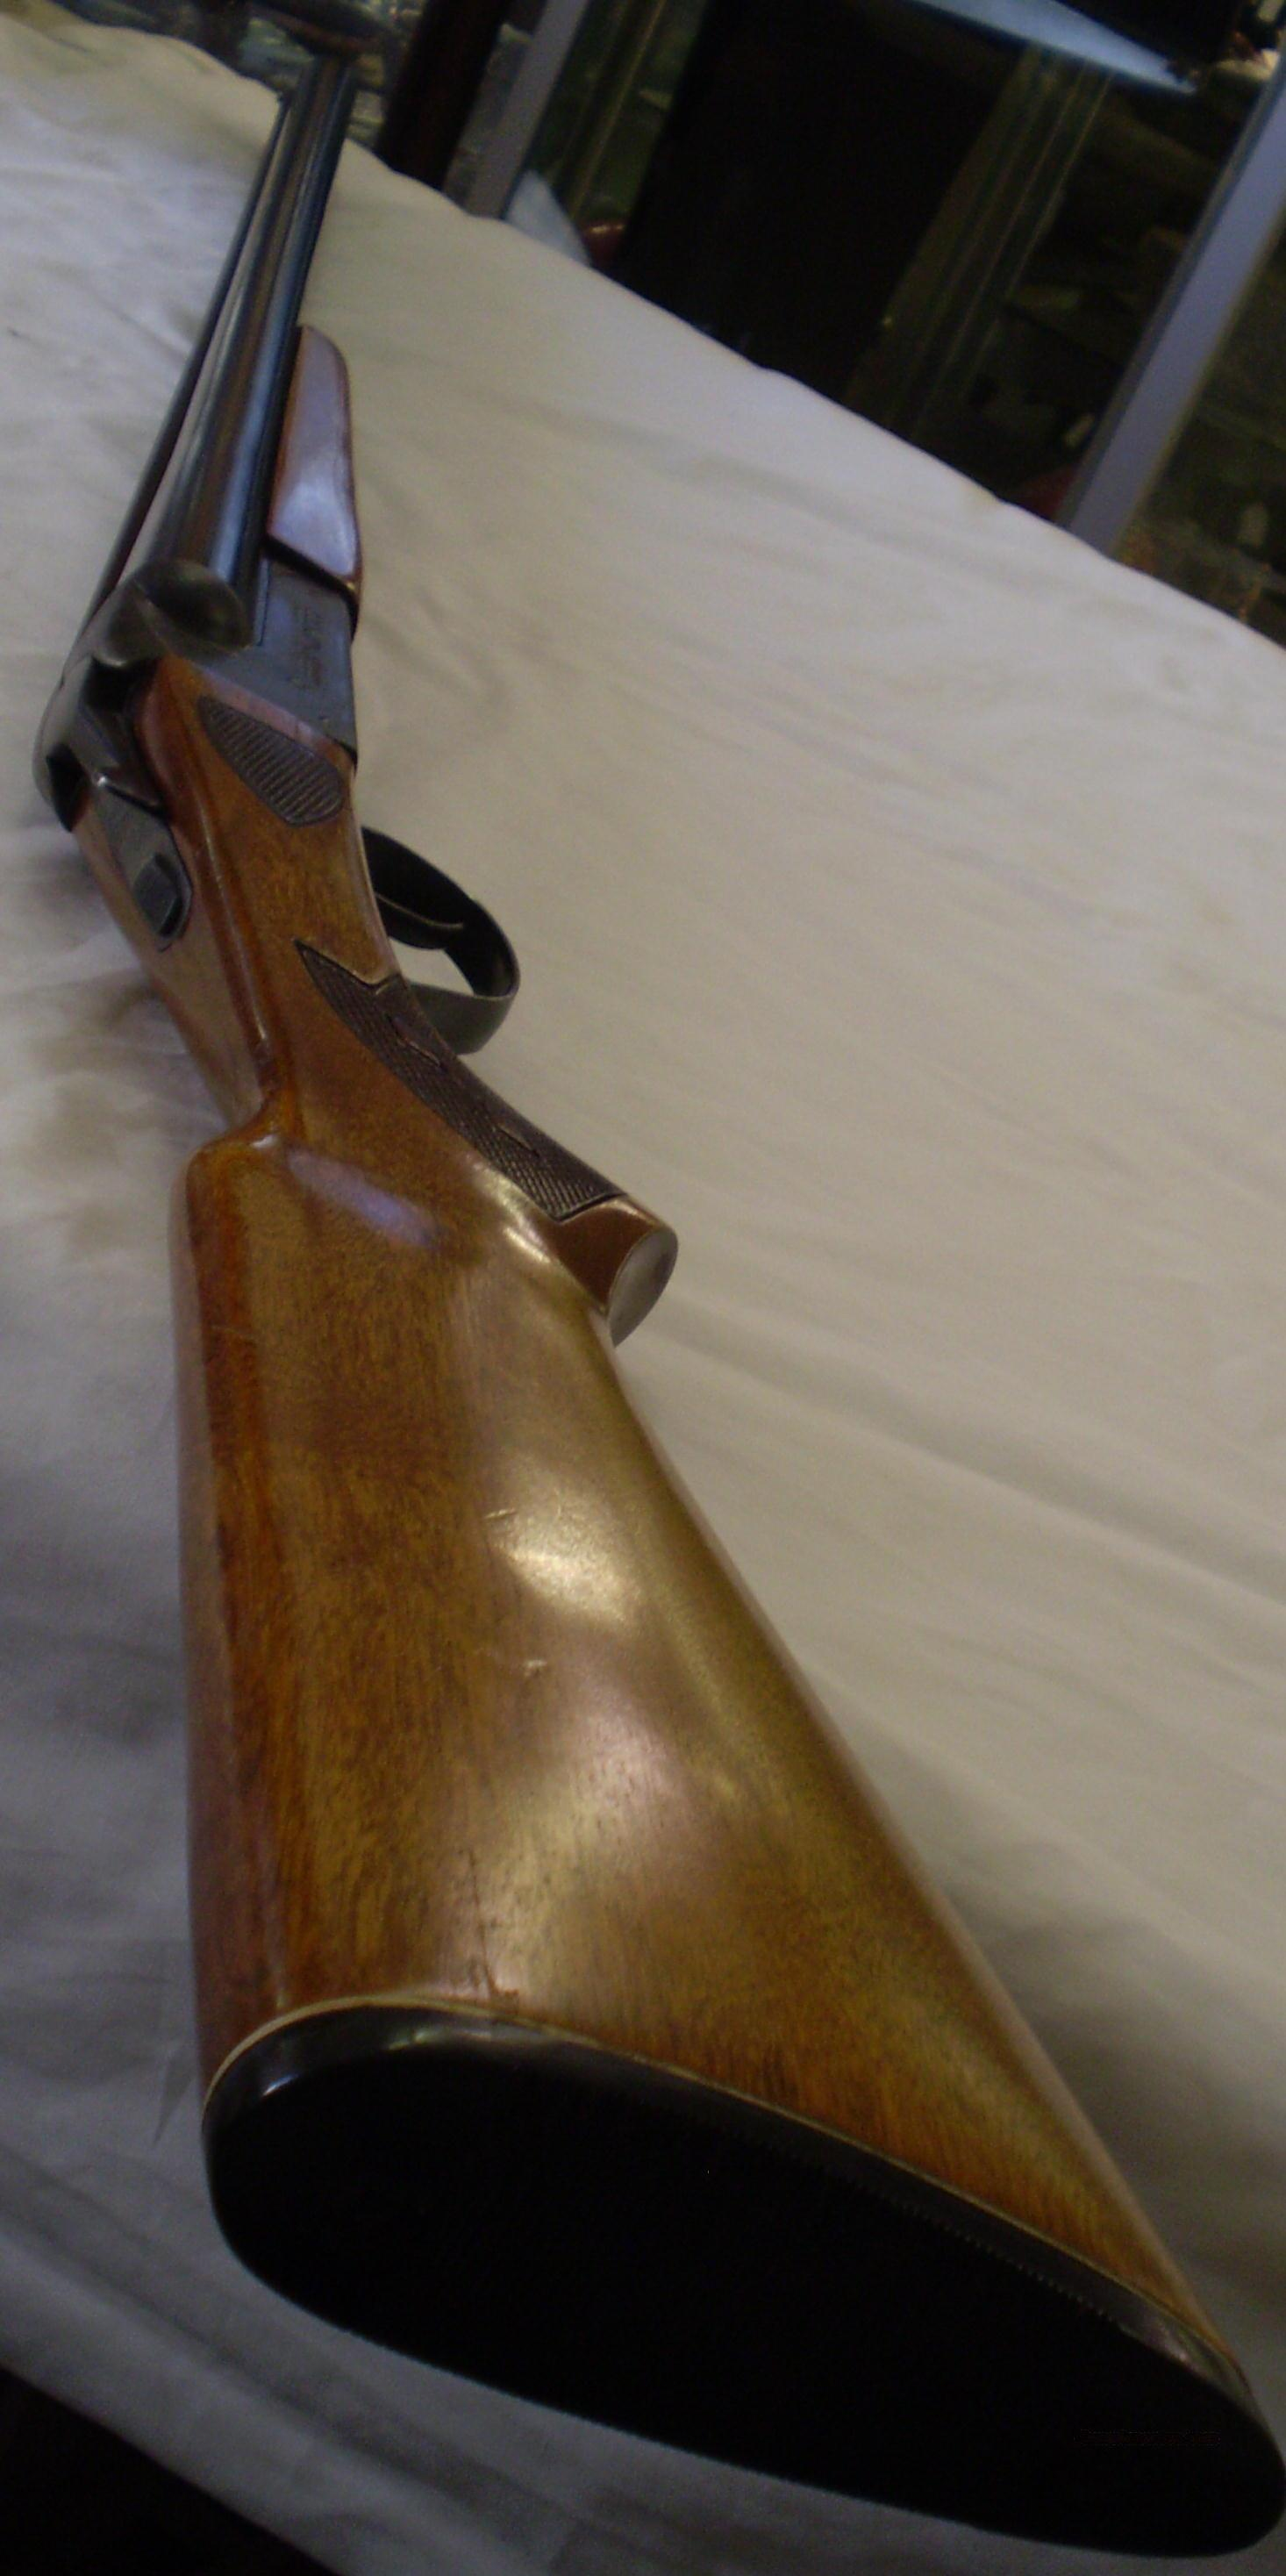 Stevens Model 311 DBL BRL Shotgun Like New! 12ga  Guns > Shotguns > Stevens Shotguns